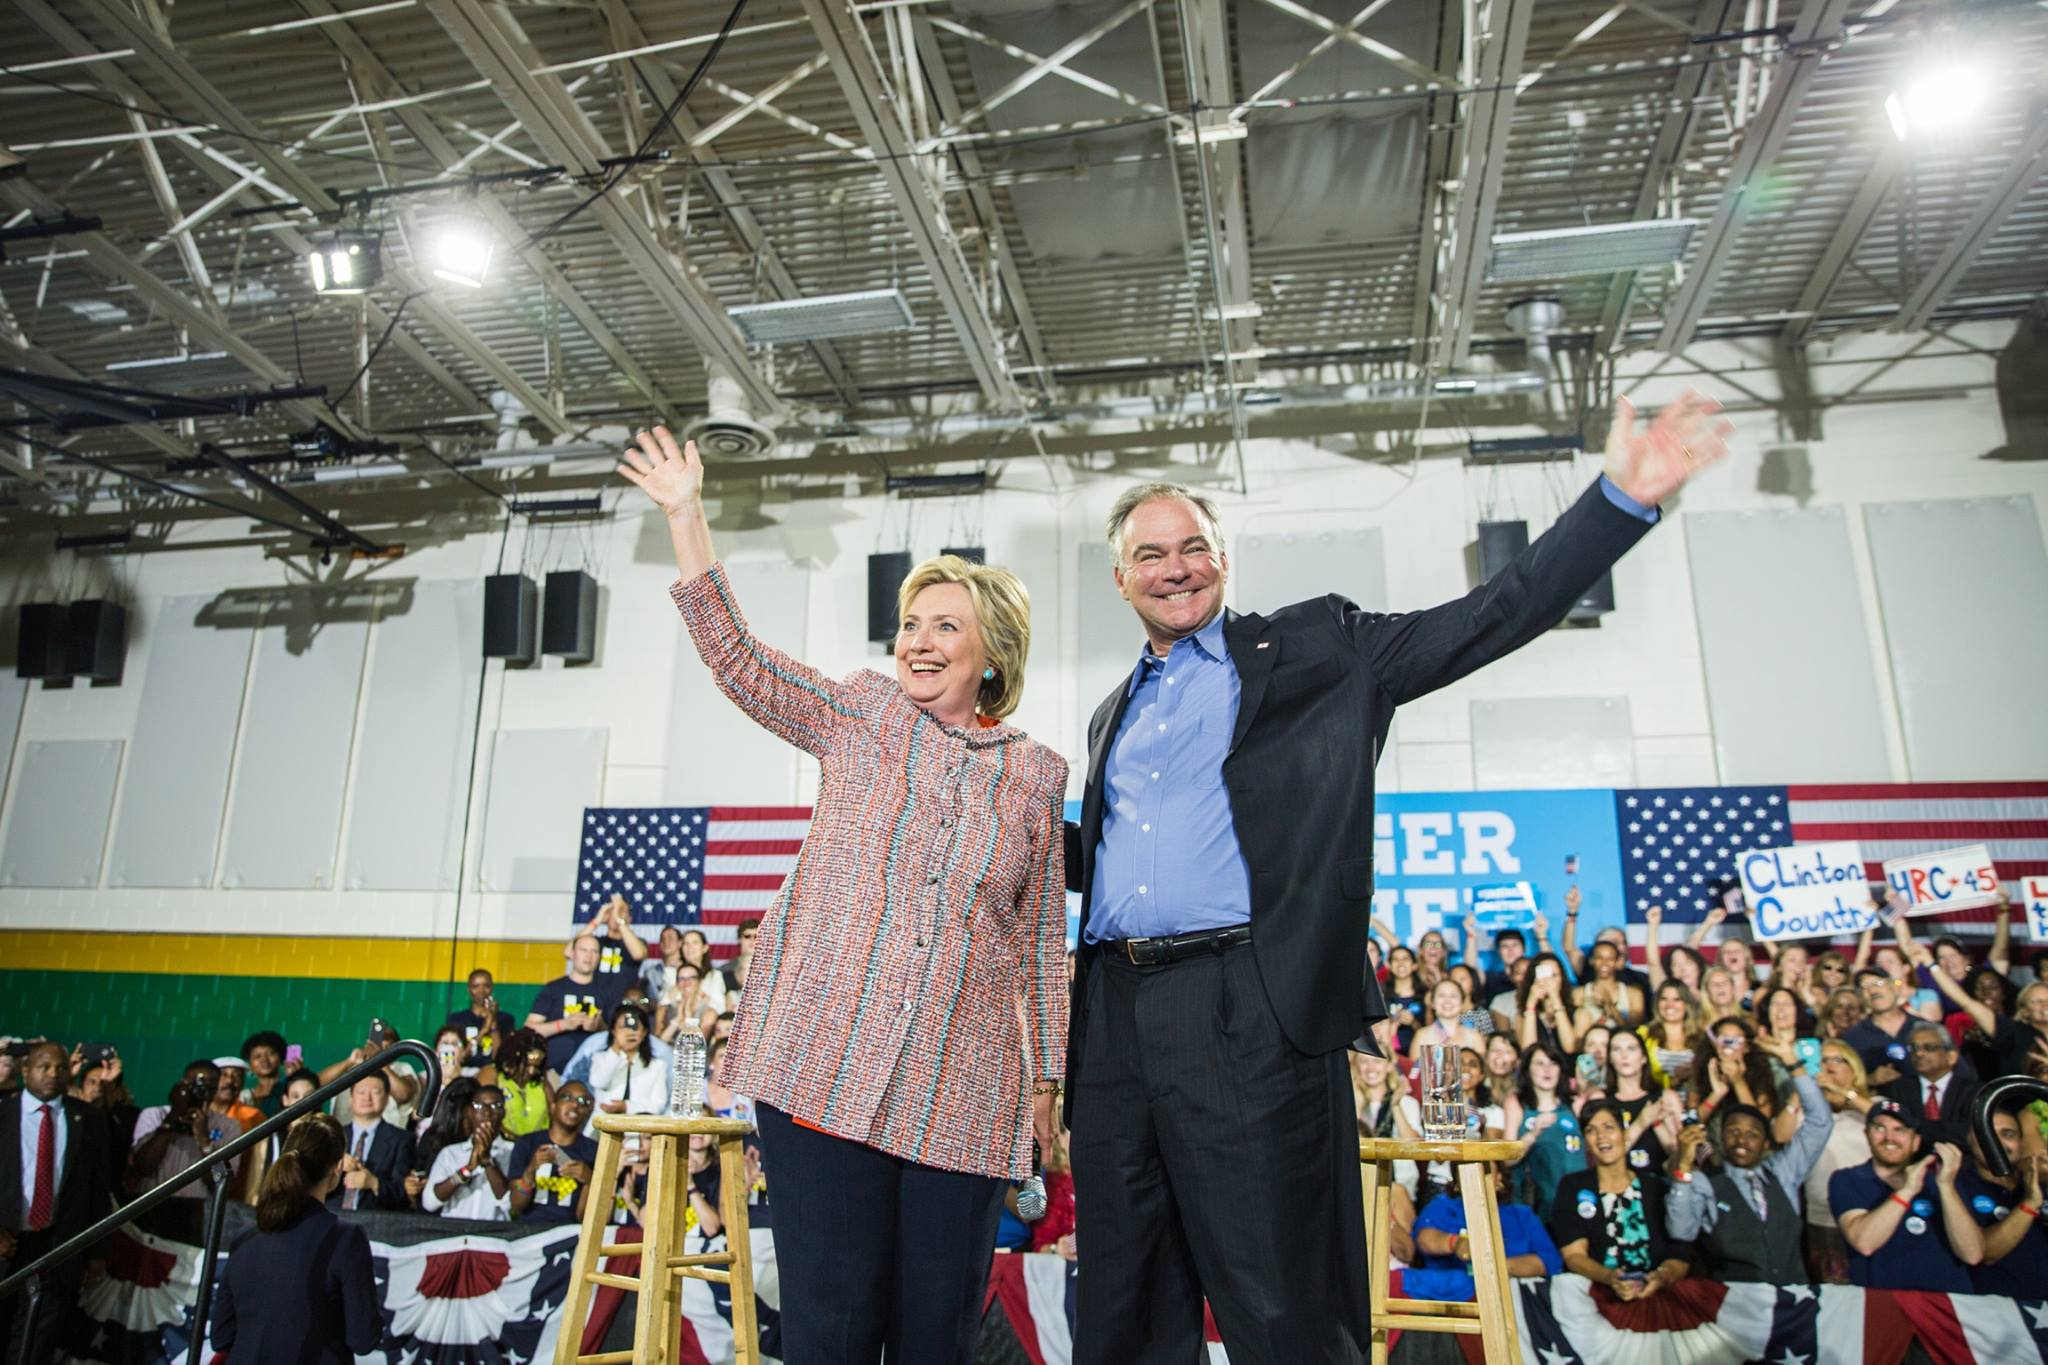 Lobbyist Holly Cook Macarro raises big sums for Hillary Clinton